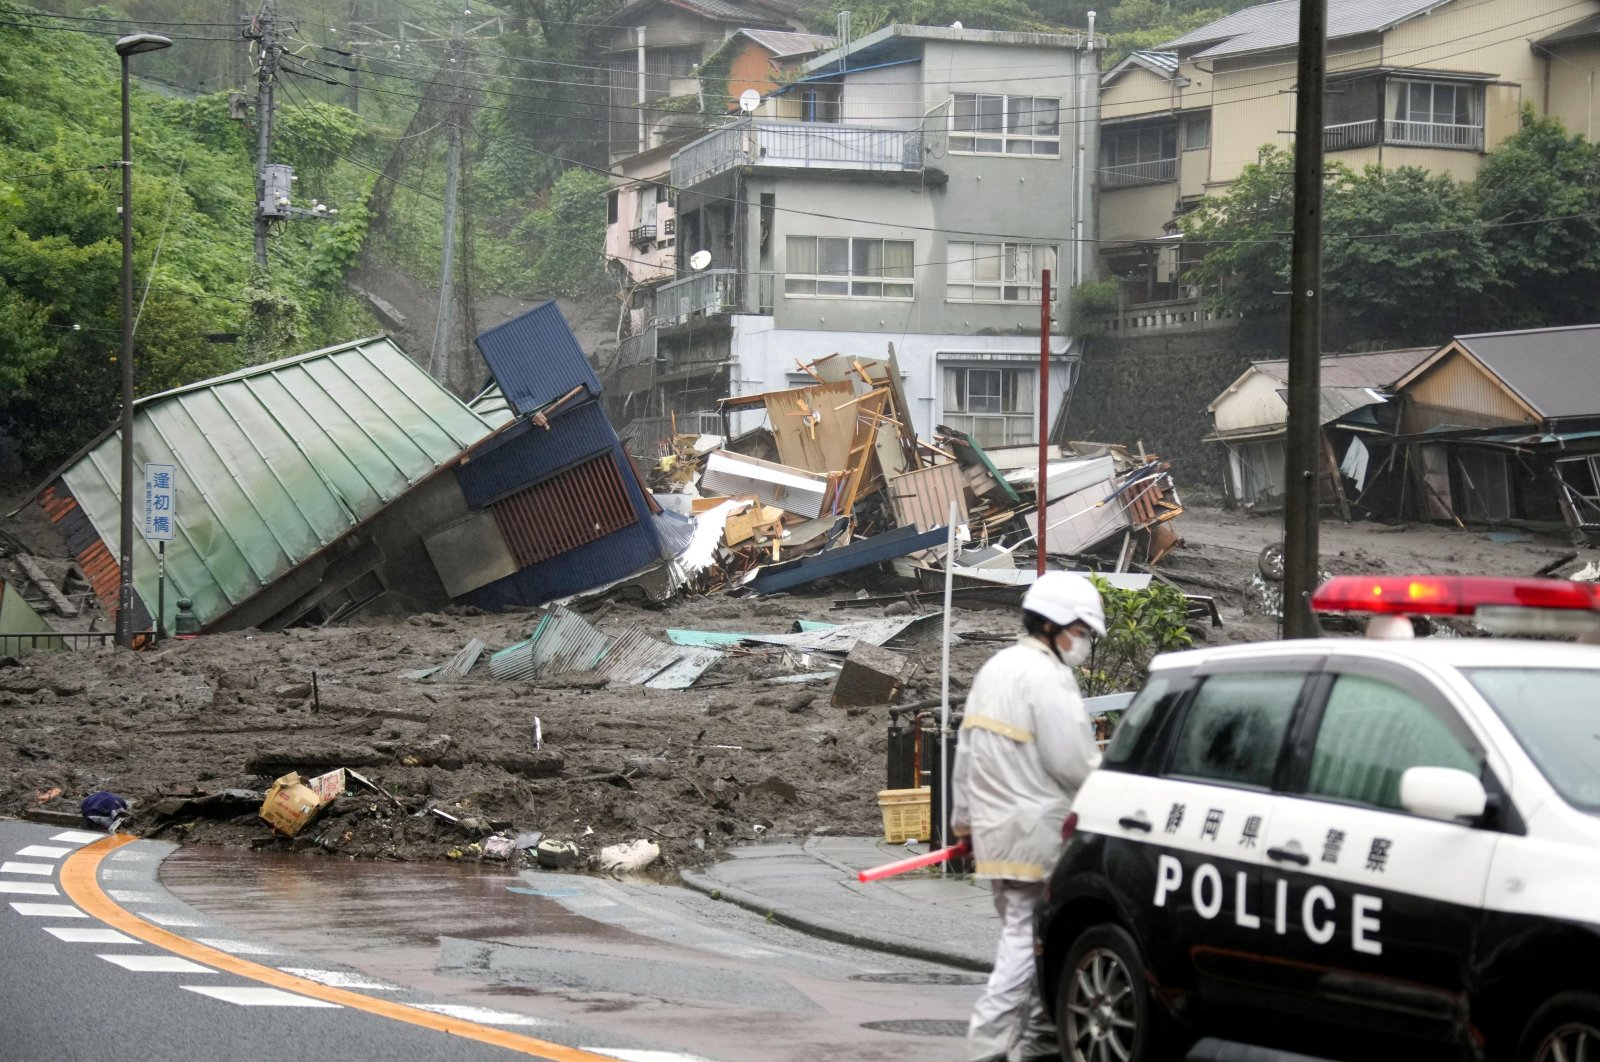 Houses damaged by a mudslide are seen following heavy rain at Izusan district in Atami, Japan July 3, 2021. (Kyodo via Reuters)